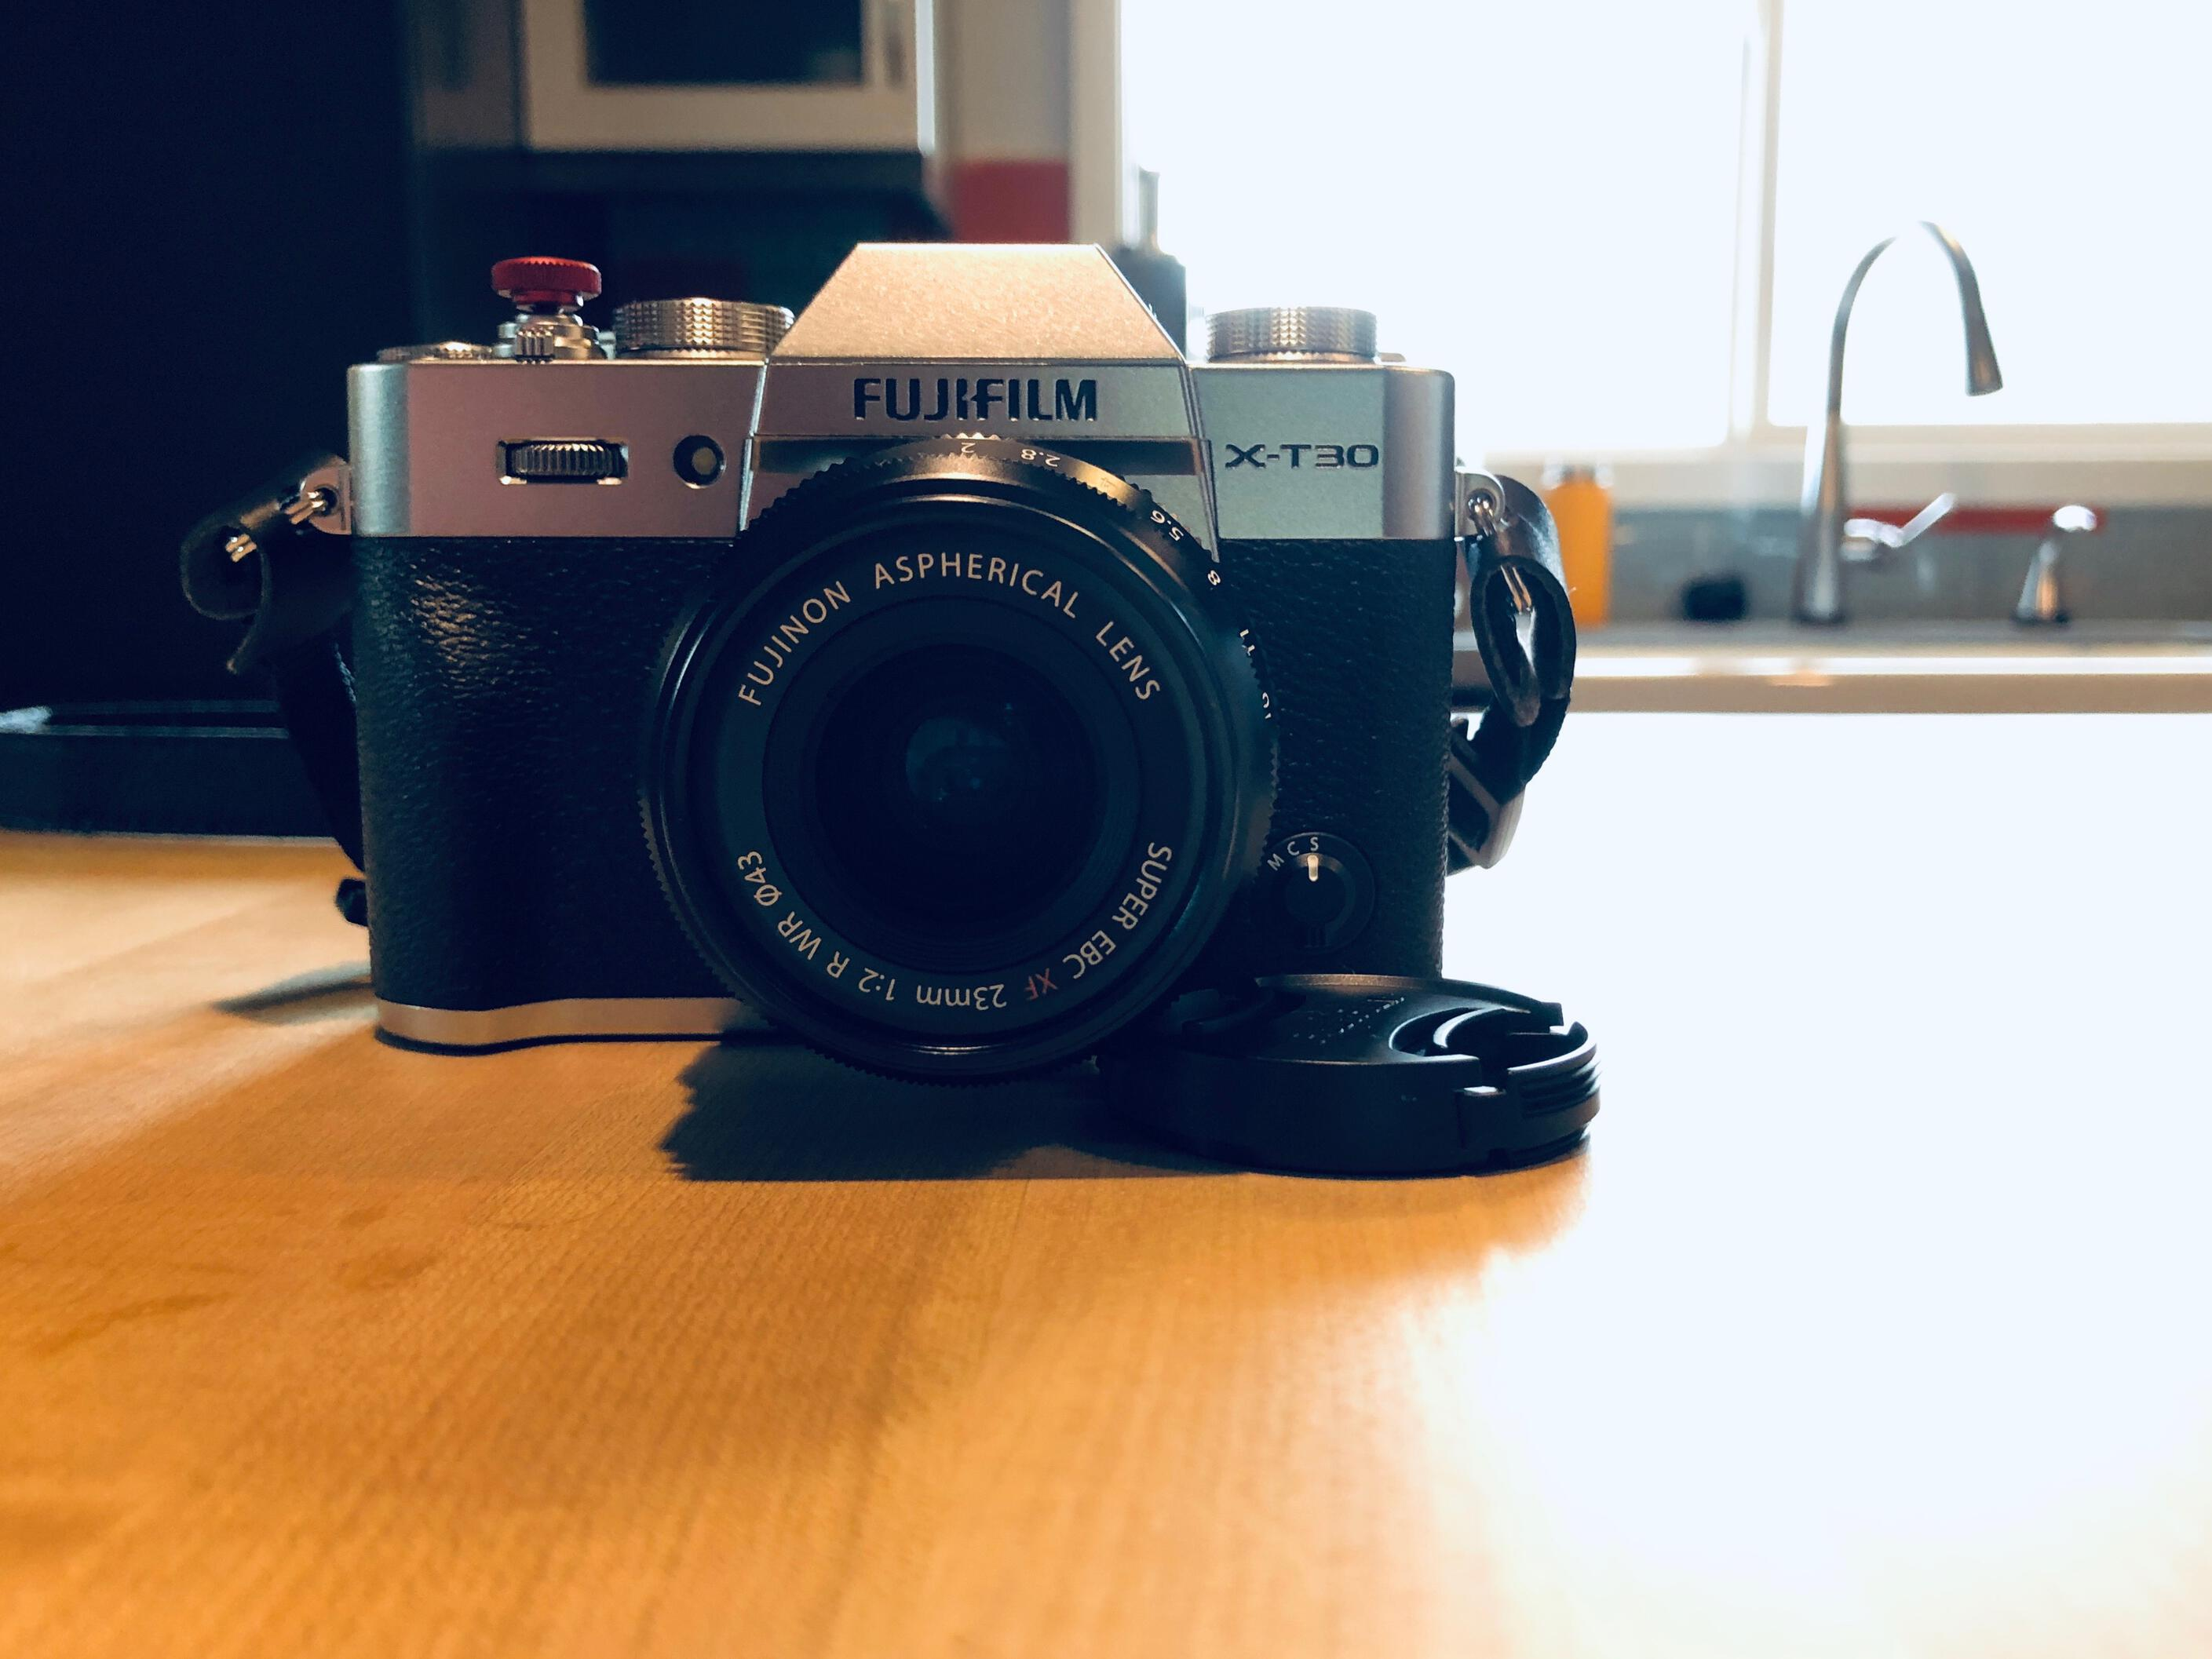 Fuji X-T30 camera sitting on a kitchen counter